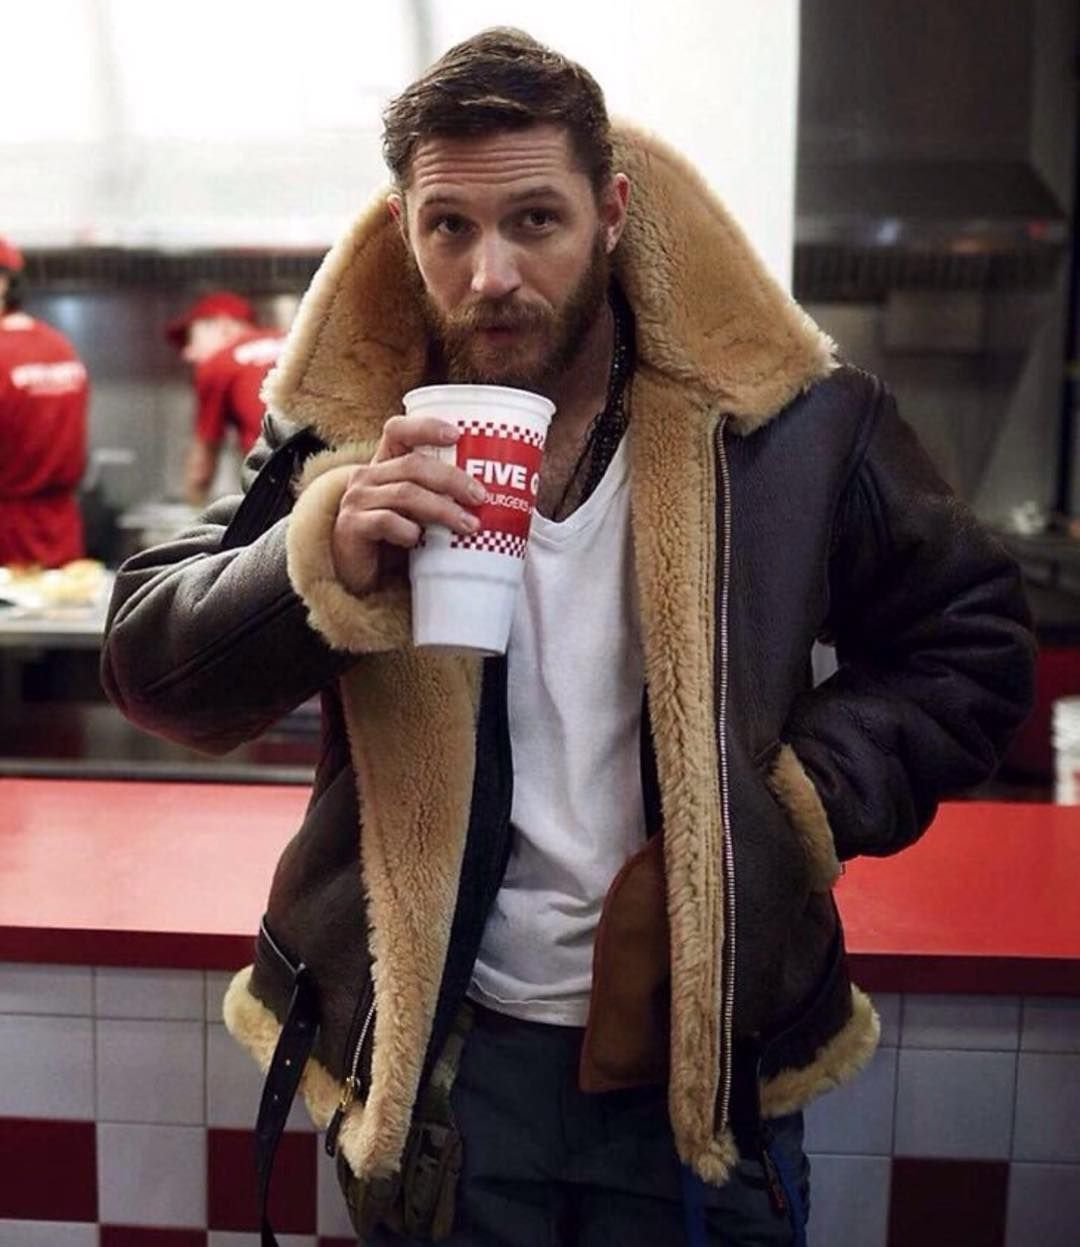 ac42ede43 Cockpit USA Shearling coat worn by @tomhardy_real | Bits & Pieces ...